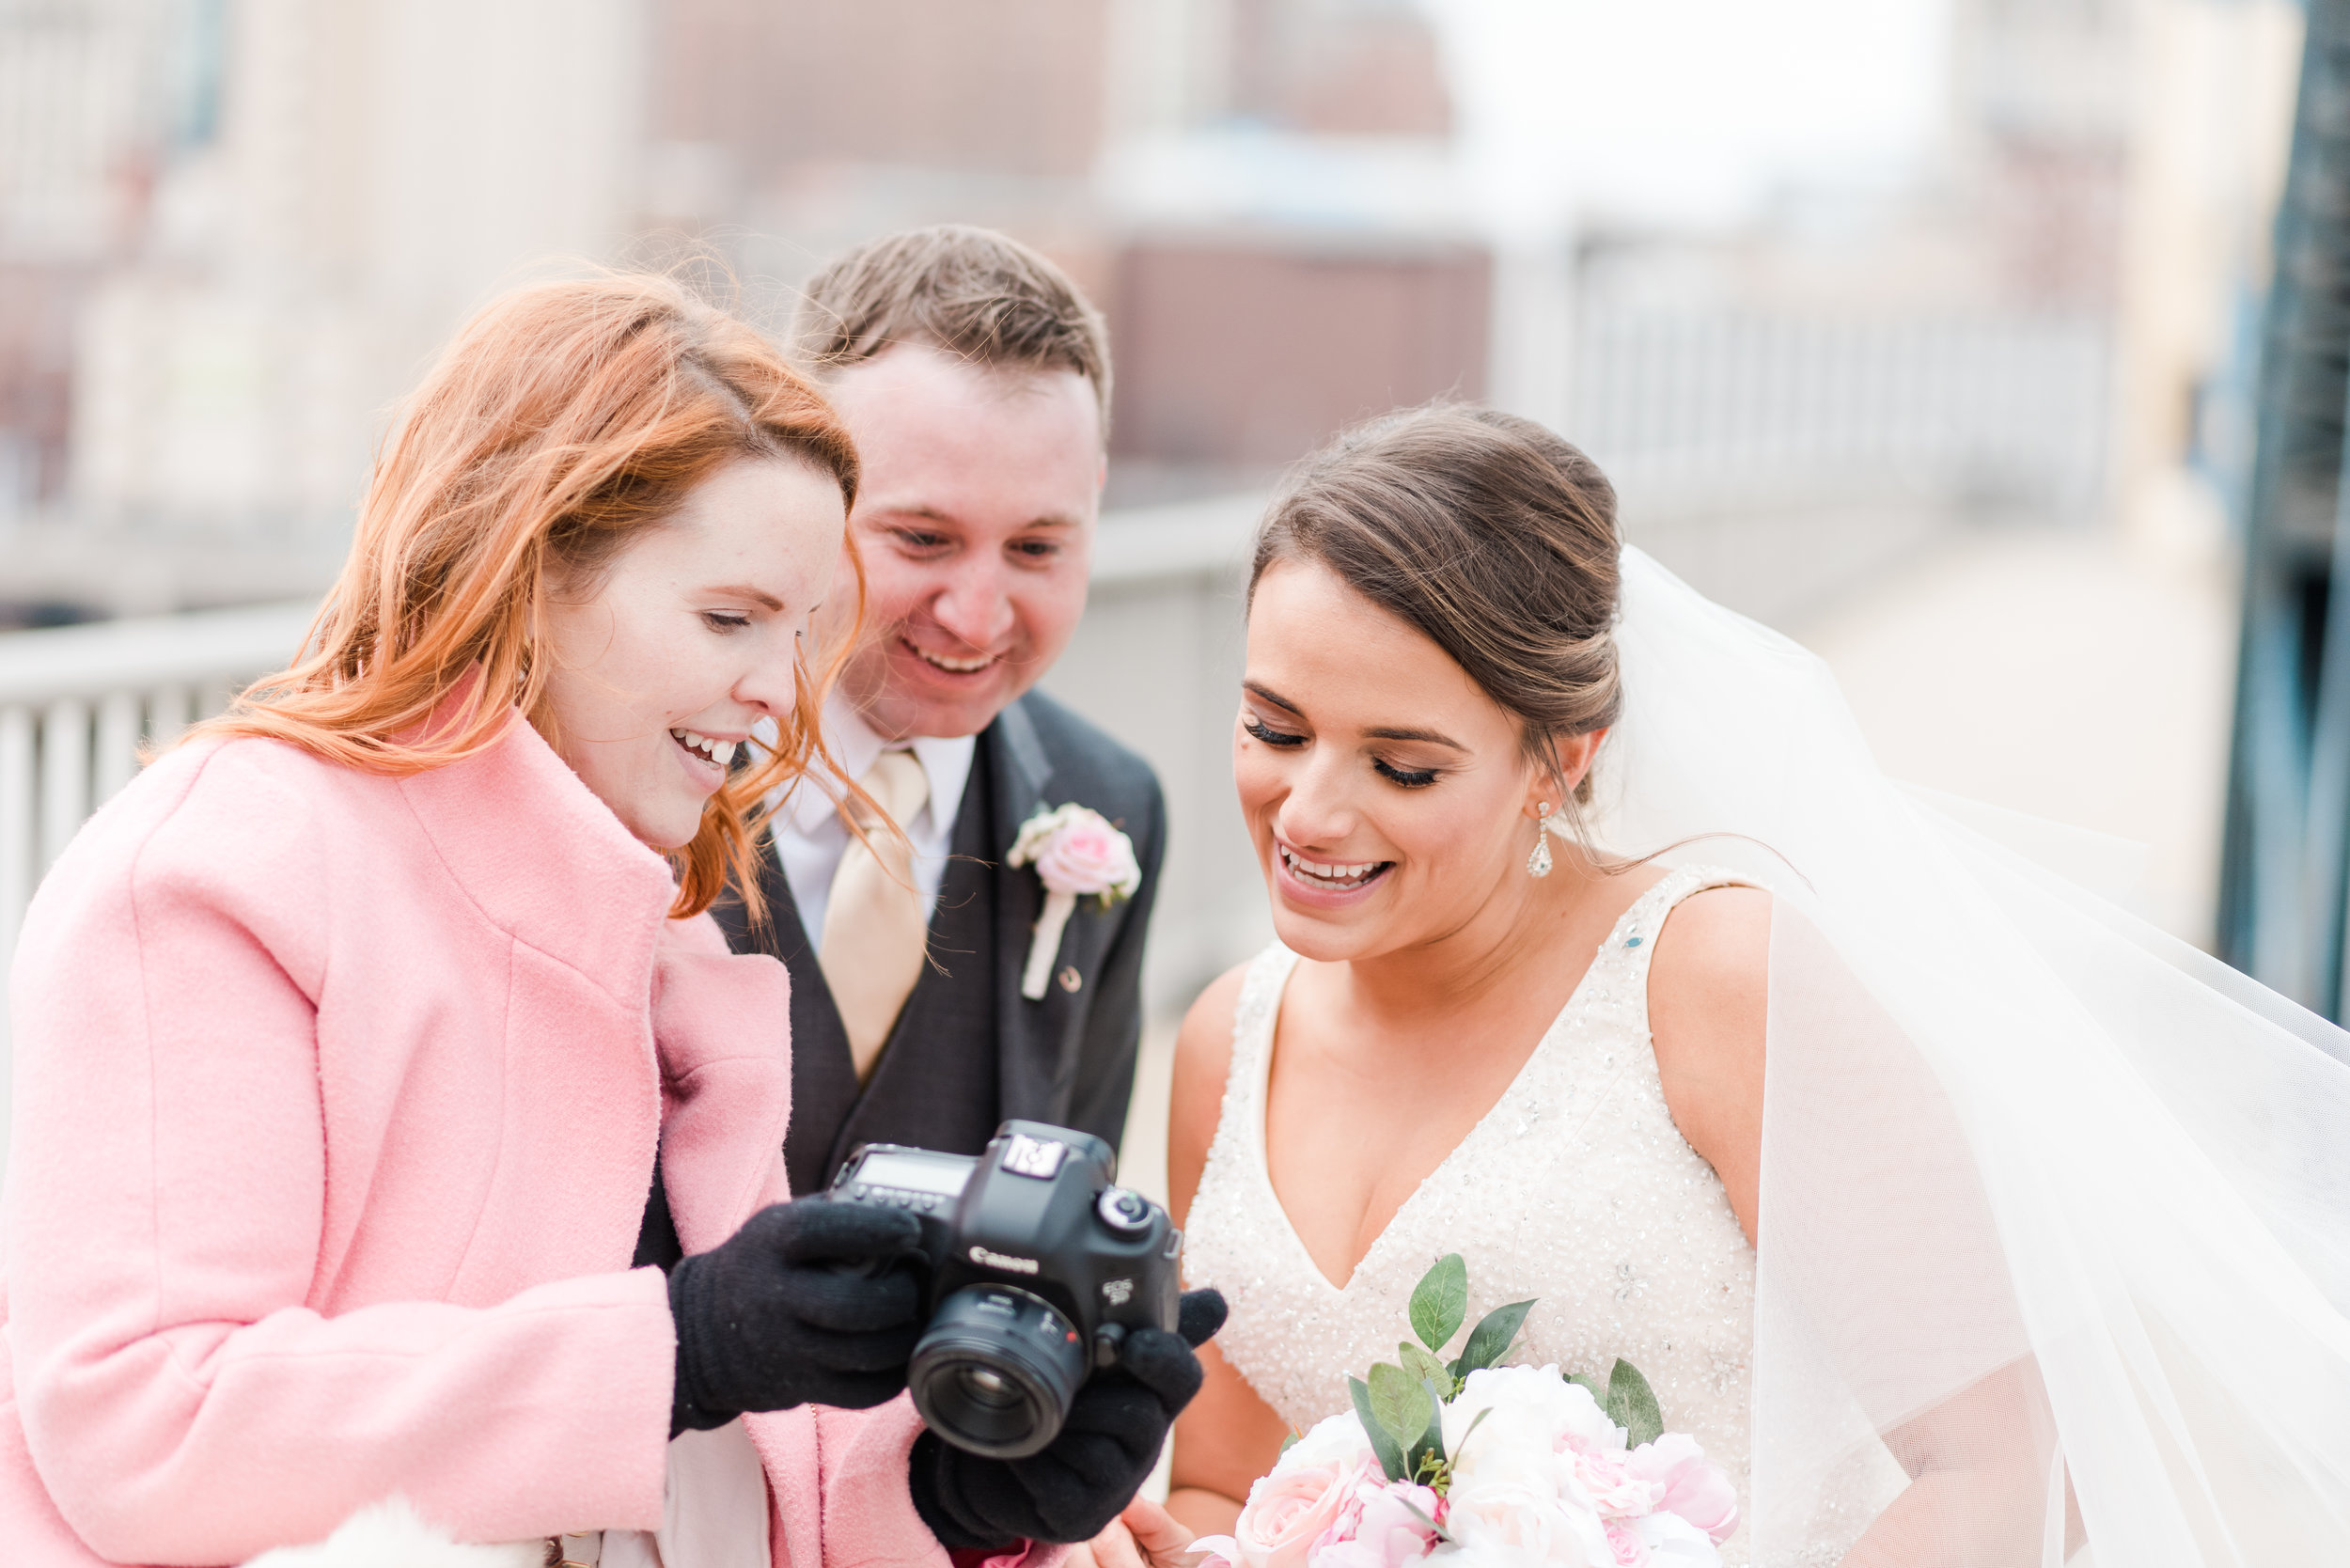 """No review I write can come close to describing how amazing Savannah is. - She captured all of the emotions of our wedding day. These photos will be cherished for a lifetime."""